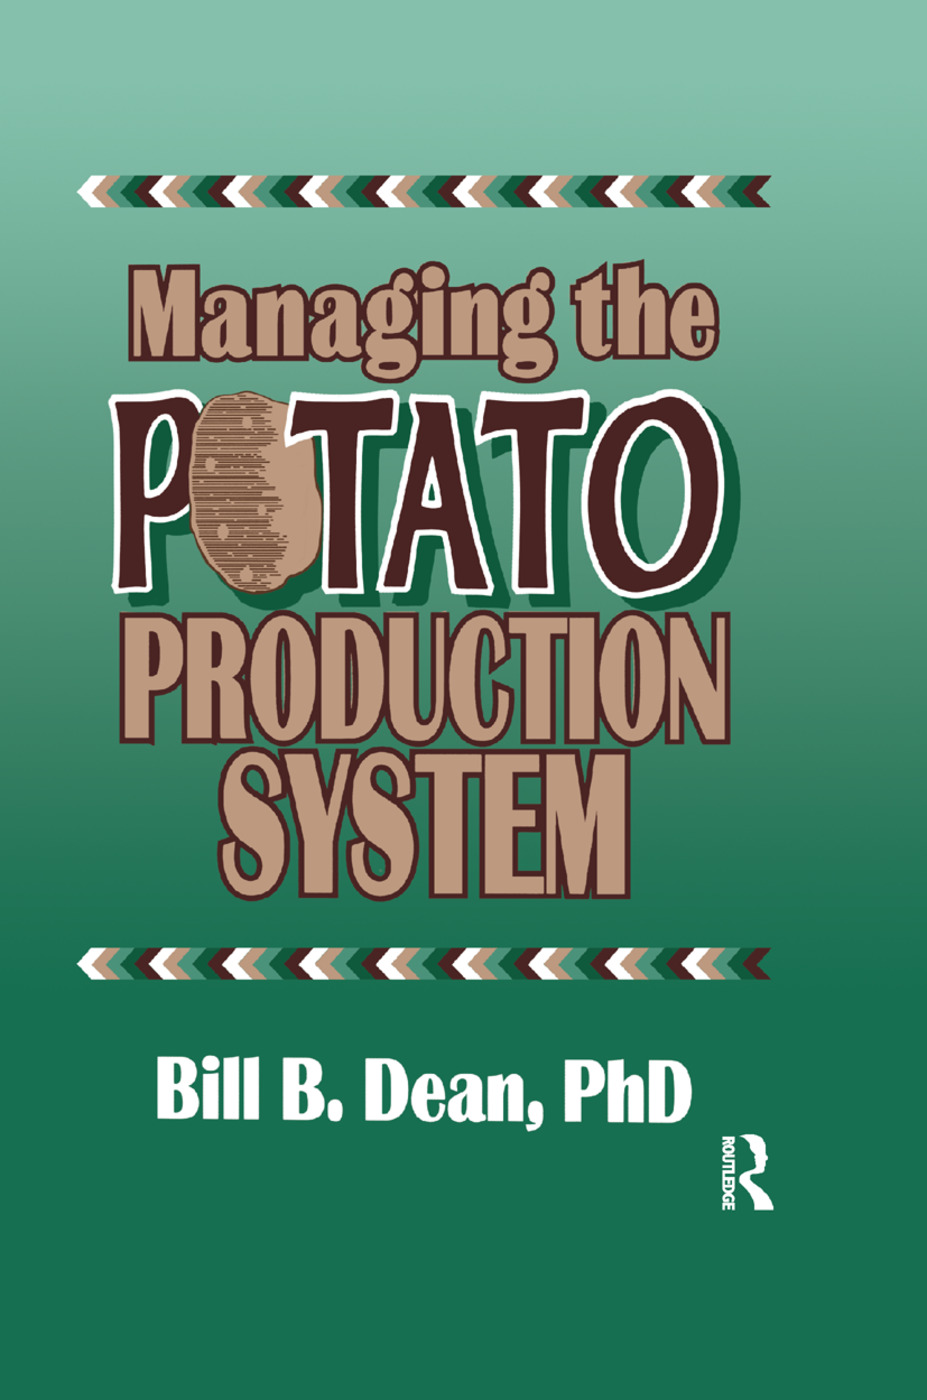 Managing the Potato Production System: 0734, 1st Edition (Paperback) book cover